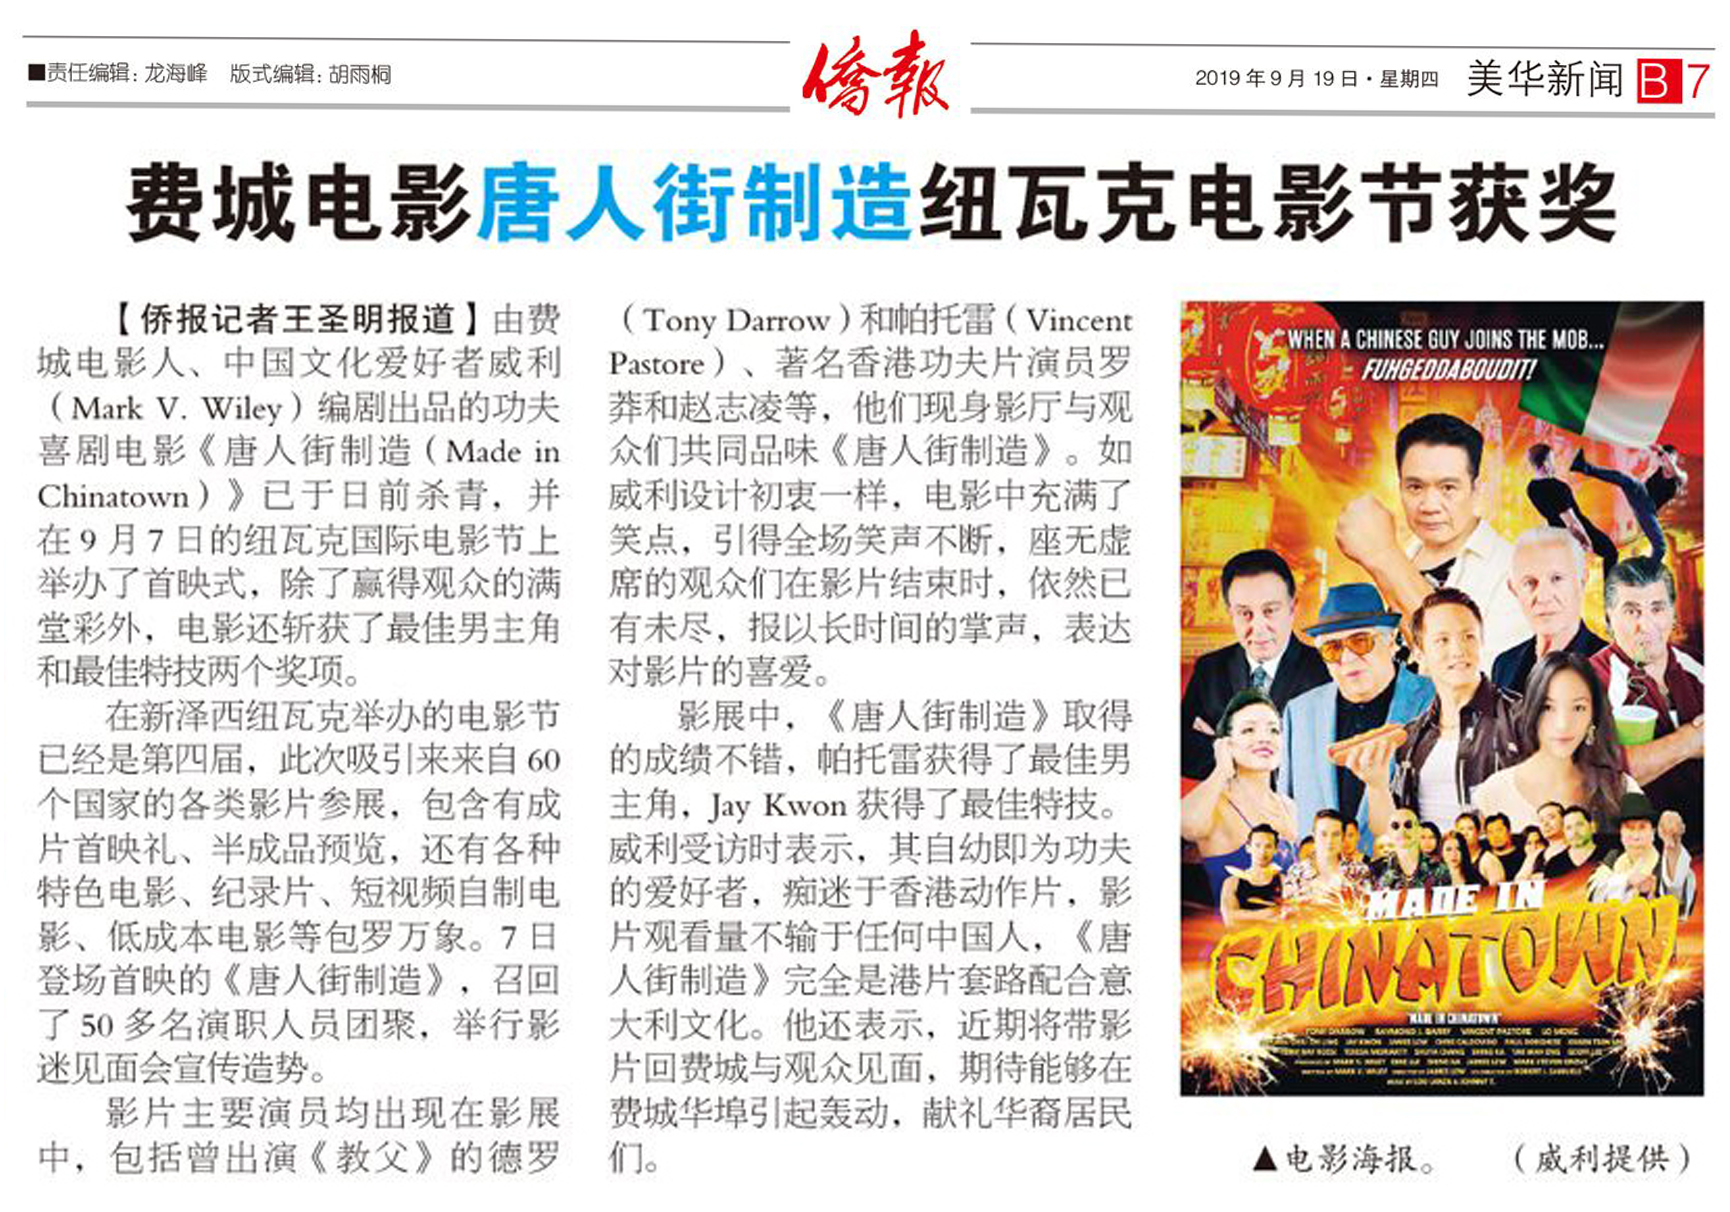 China Press Daily- Made in Chinatown - Festival Winner